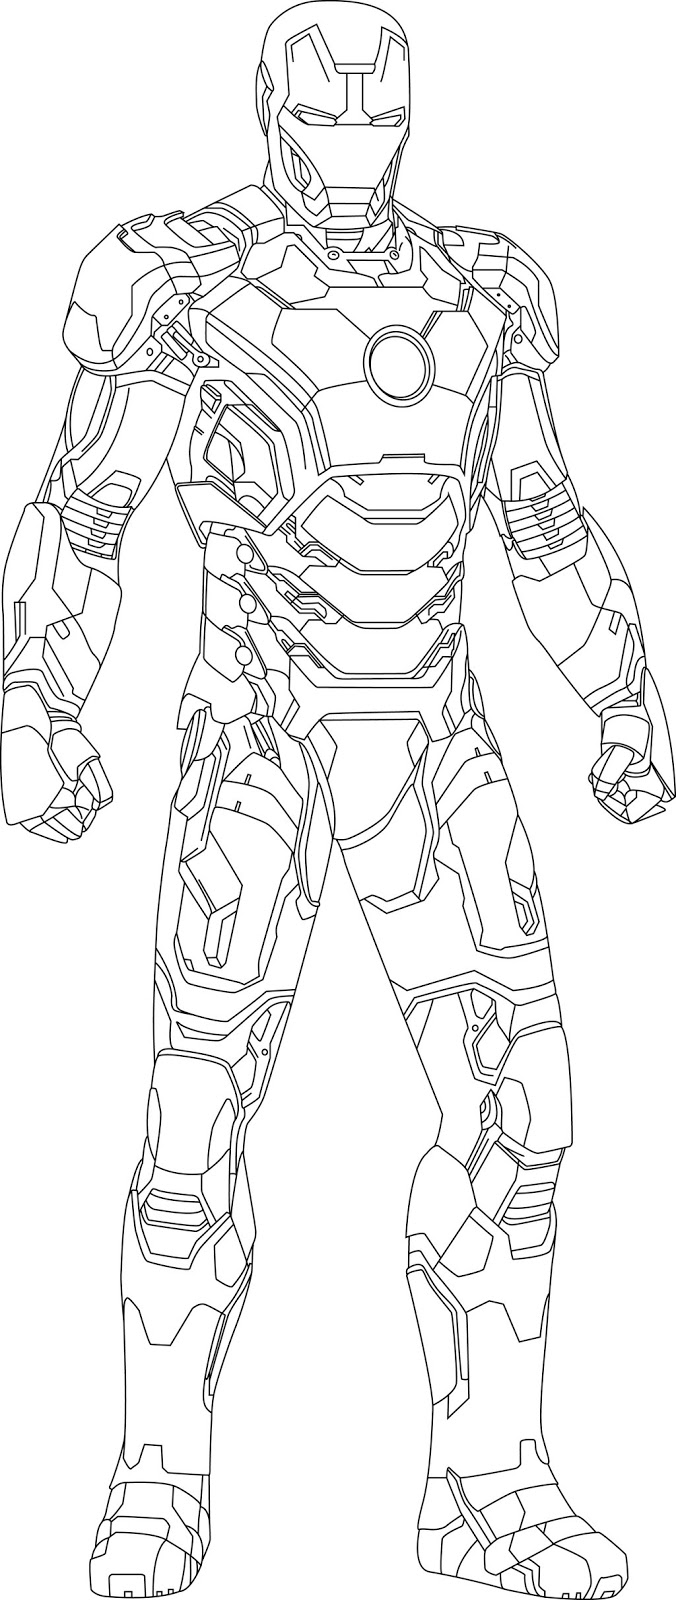 iron man colouring pages to print iron man coloring pages printable iron man para colorear to iron print man pages colouring